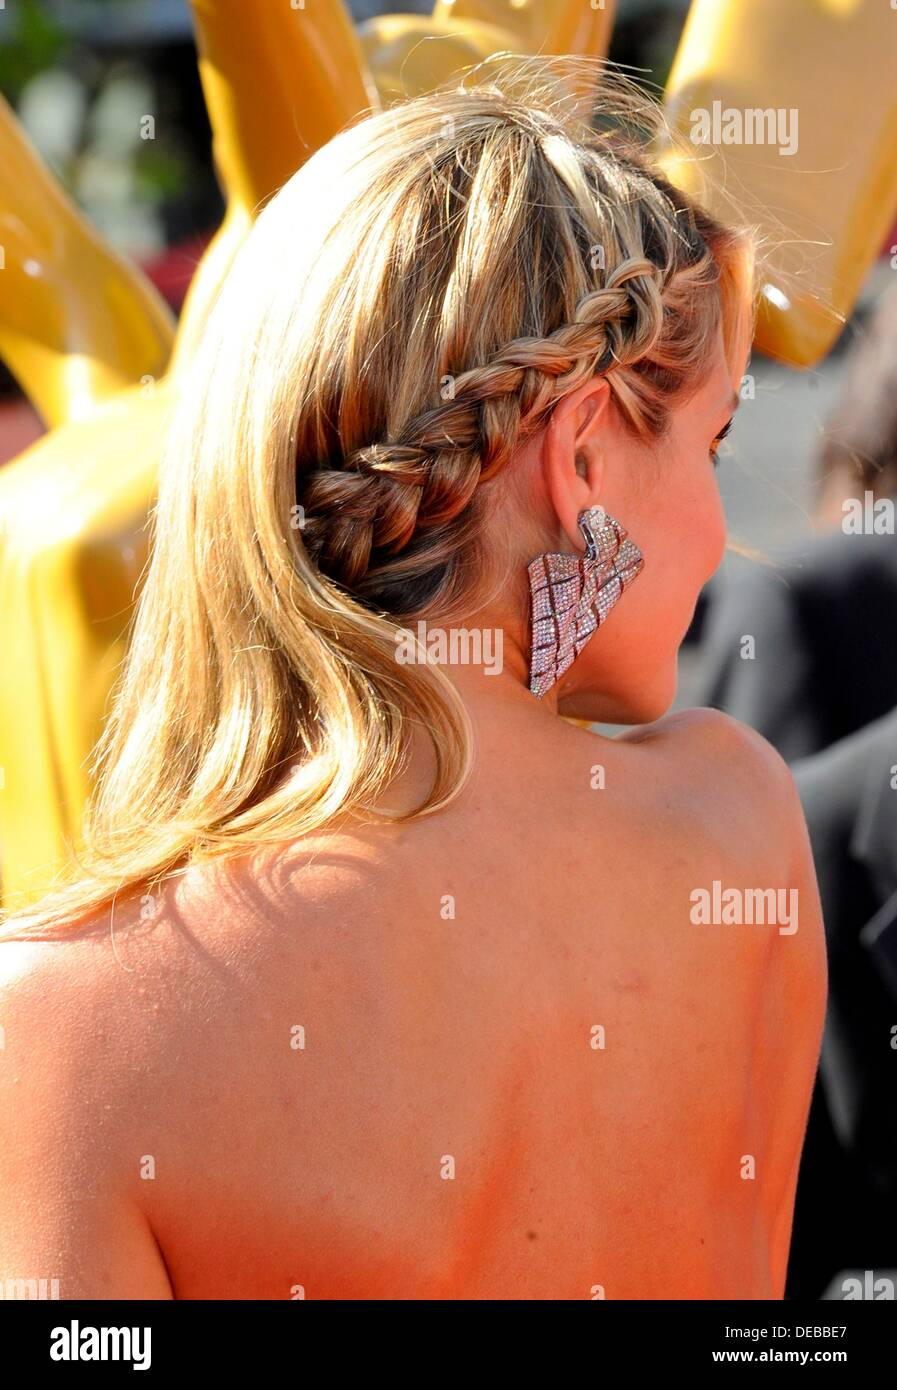 Los Angeles, CA. 15th Sep, 2013. Heidi Klum at arrivals for Primetime Emmy Awards: Creative Arts Awards - ARRIVALS, Nokia Theatre, Los Angeles, CA September 15, 2013. © Elizabeth Goodenough/Everett Collection/Alamy Live News - Stock Image